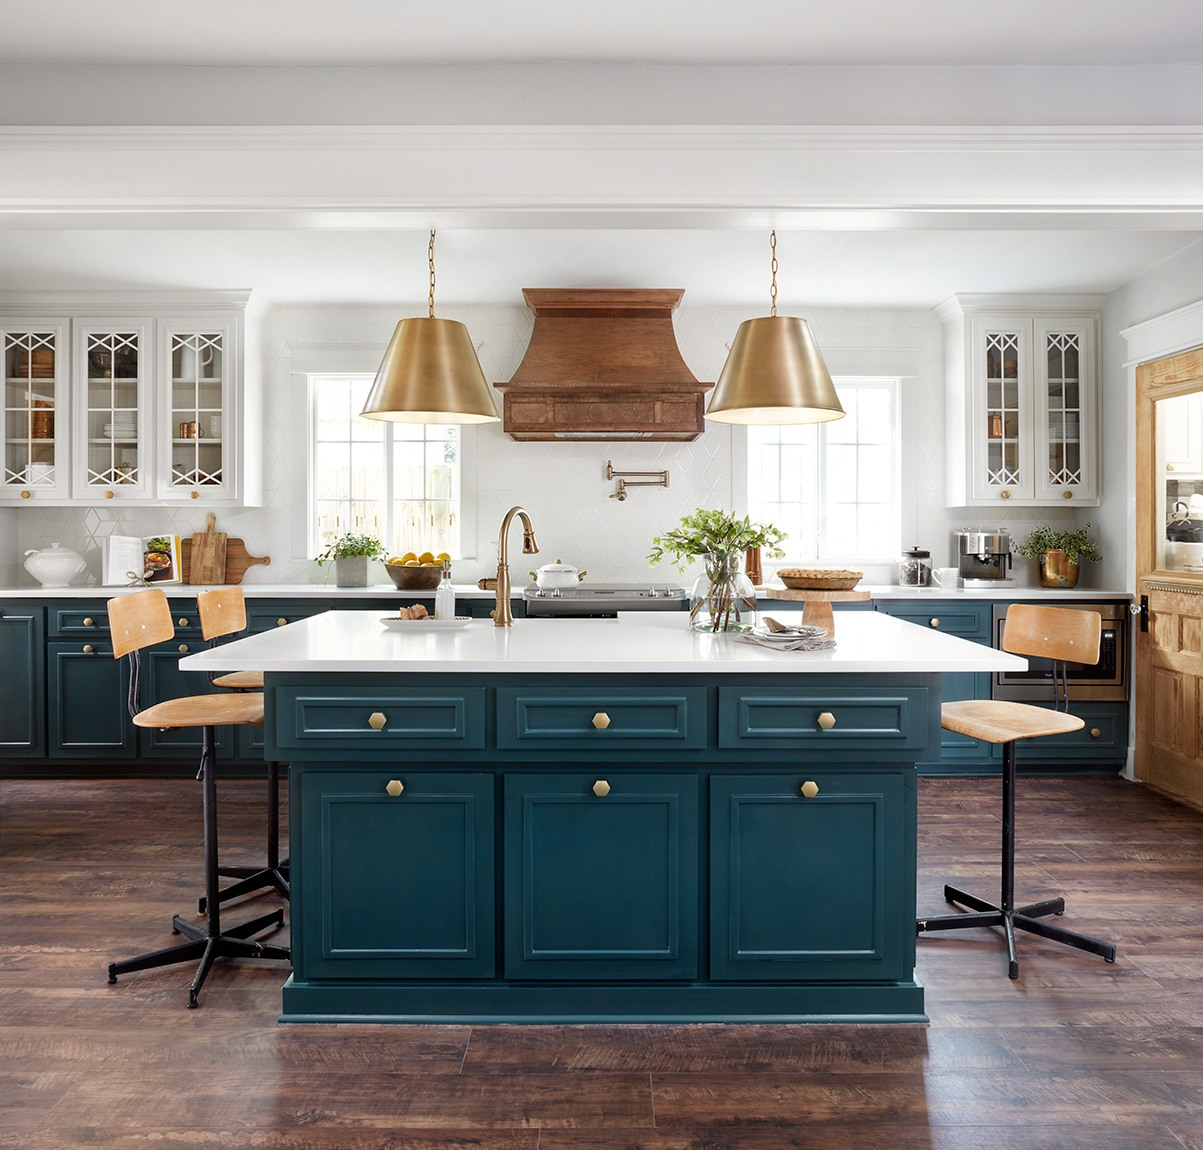 Fixer Upper Plain Jane House Kitchen Love The White Cabinets With Pea Blue Island